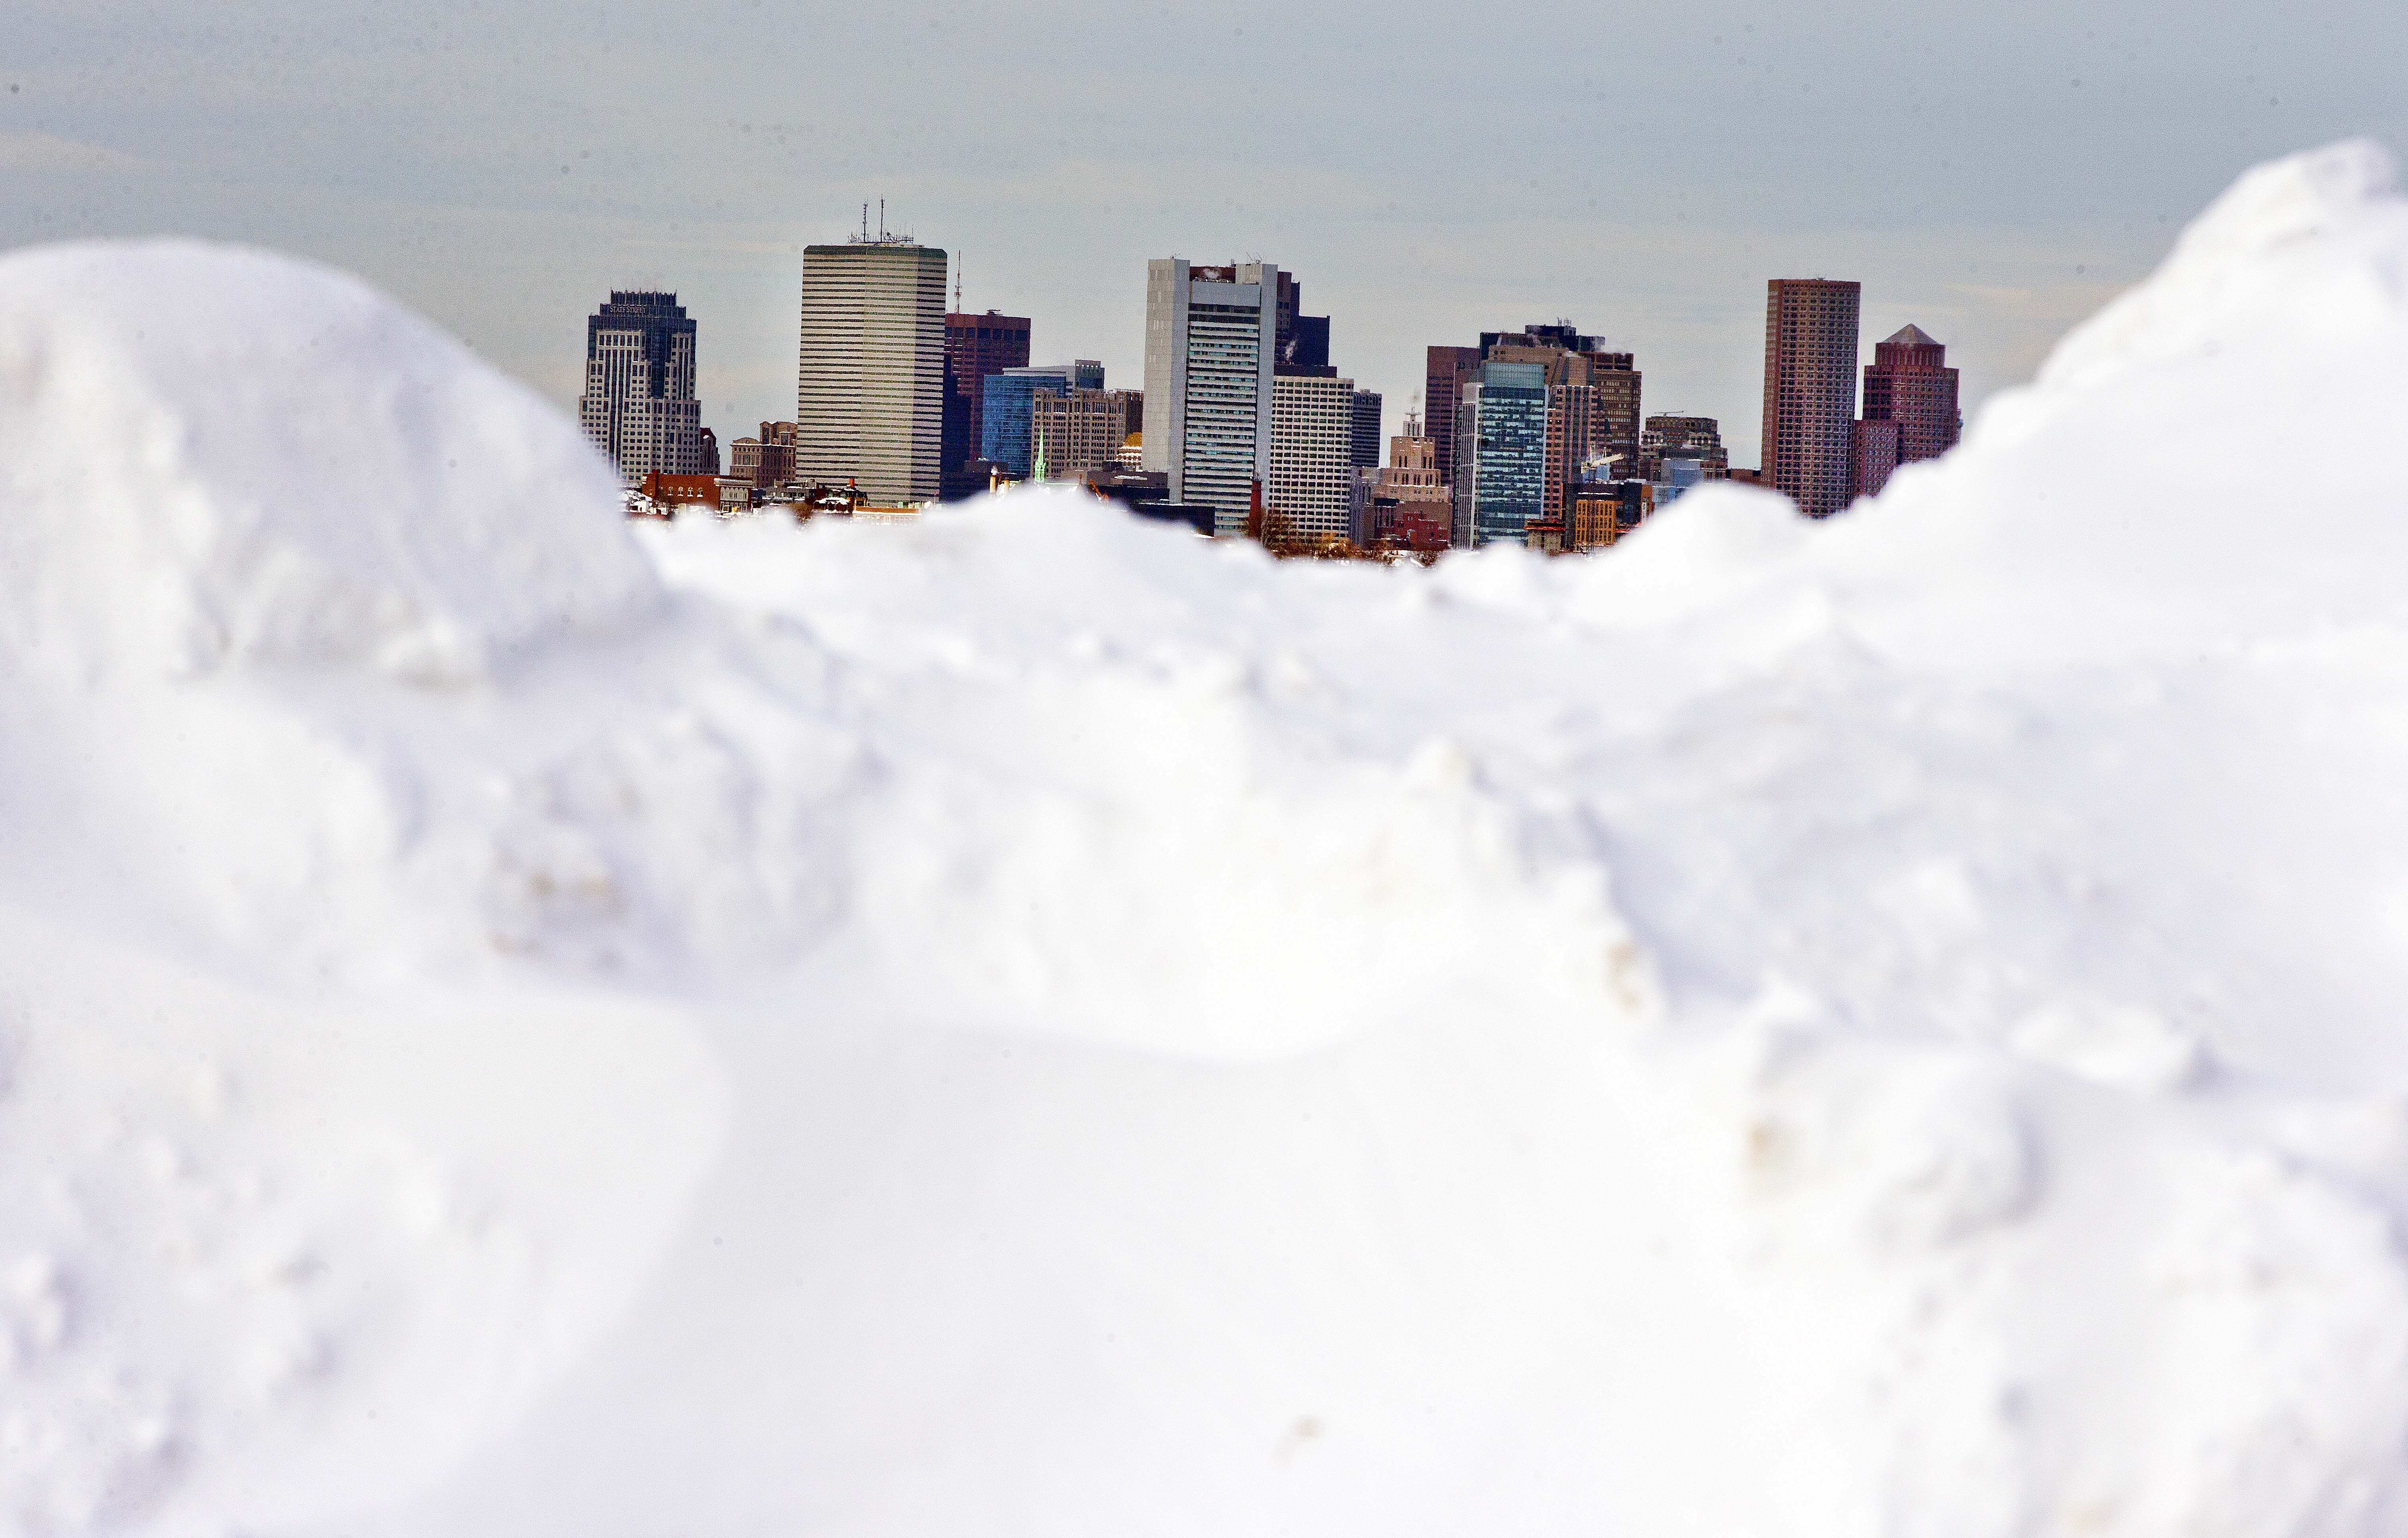 Piles of snow along the streets of Boston.